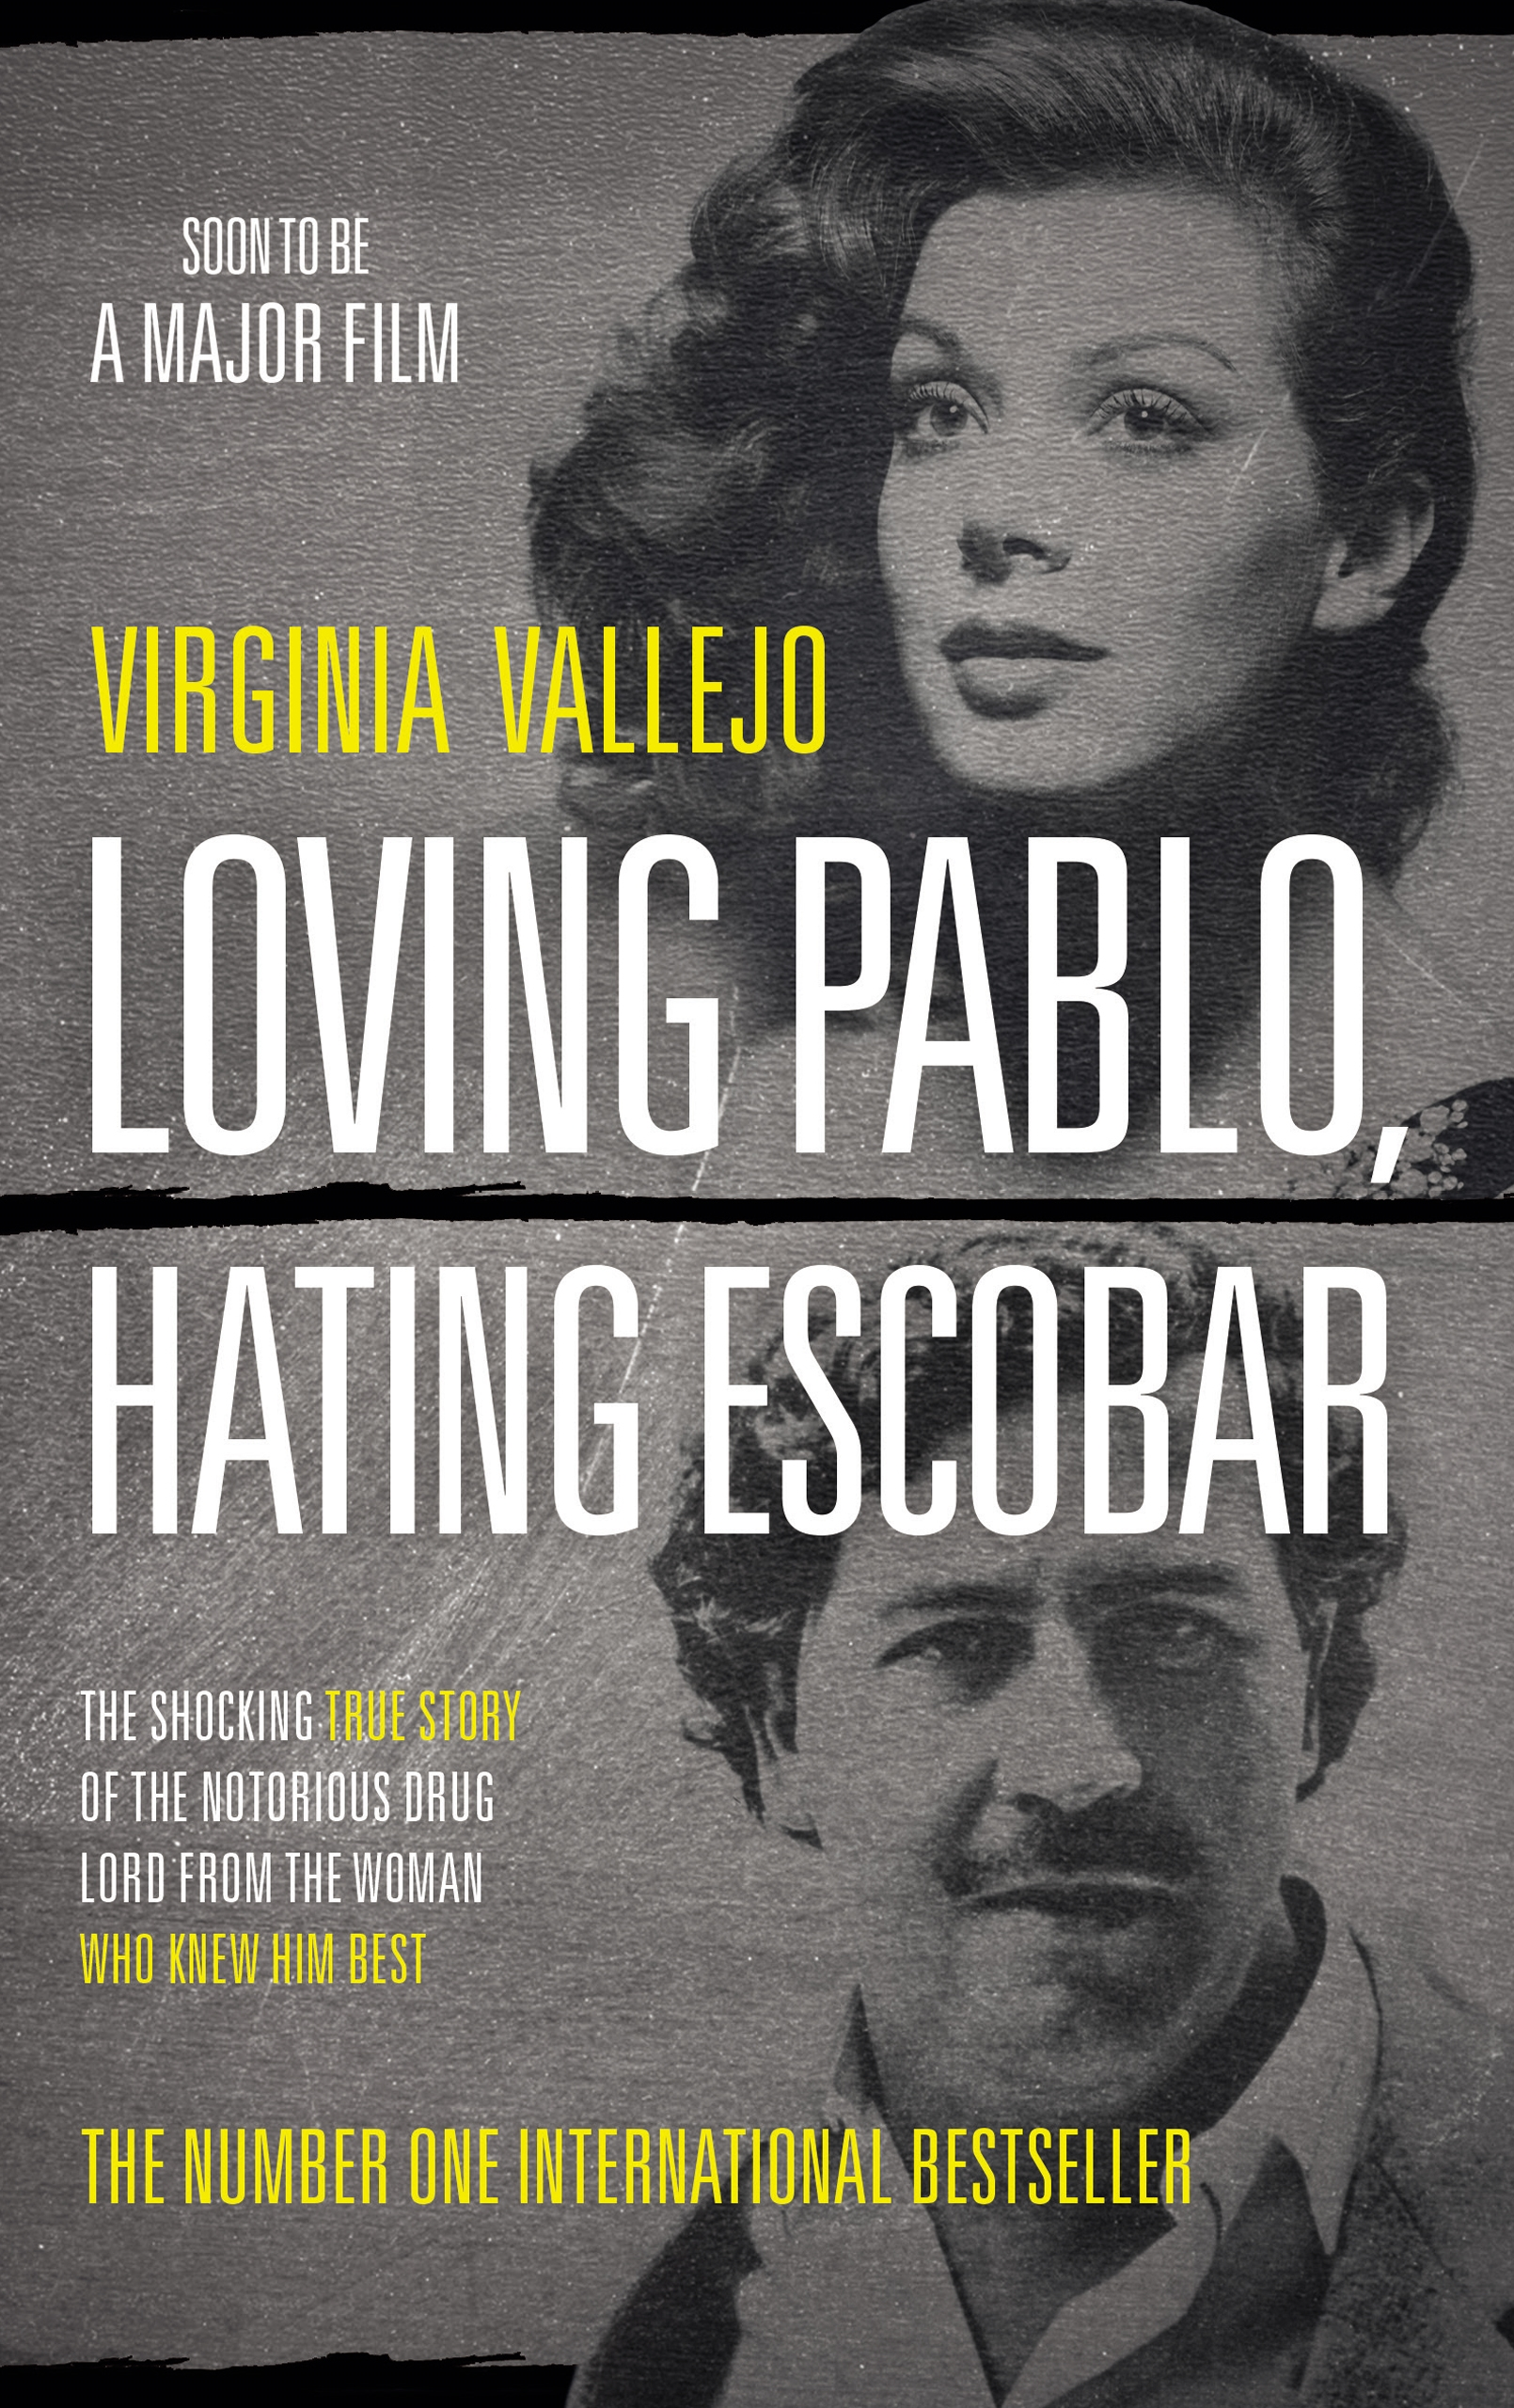 Loving Pablo Hating Escobar The Shocking True Story Of The Notorious Drug Lord From The Woman Who Knew Him Best By Virginia Vallejo Canongate Books